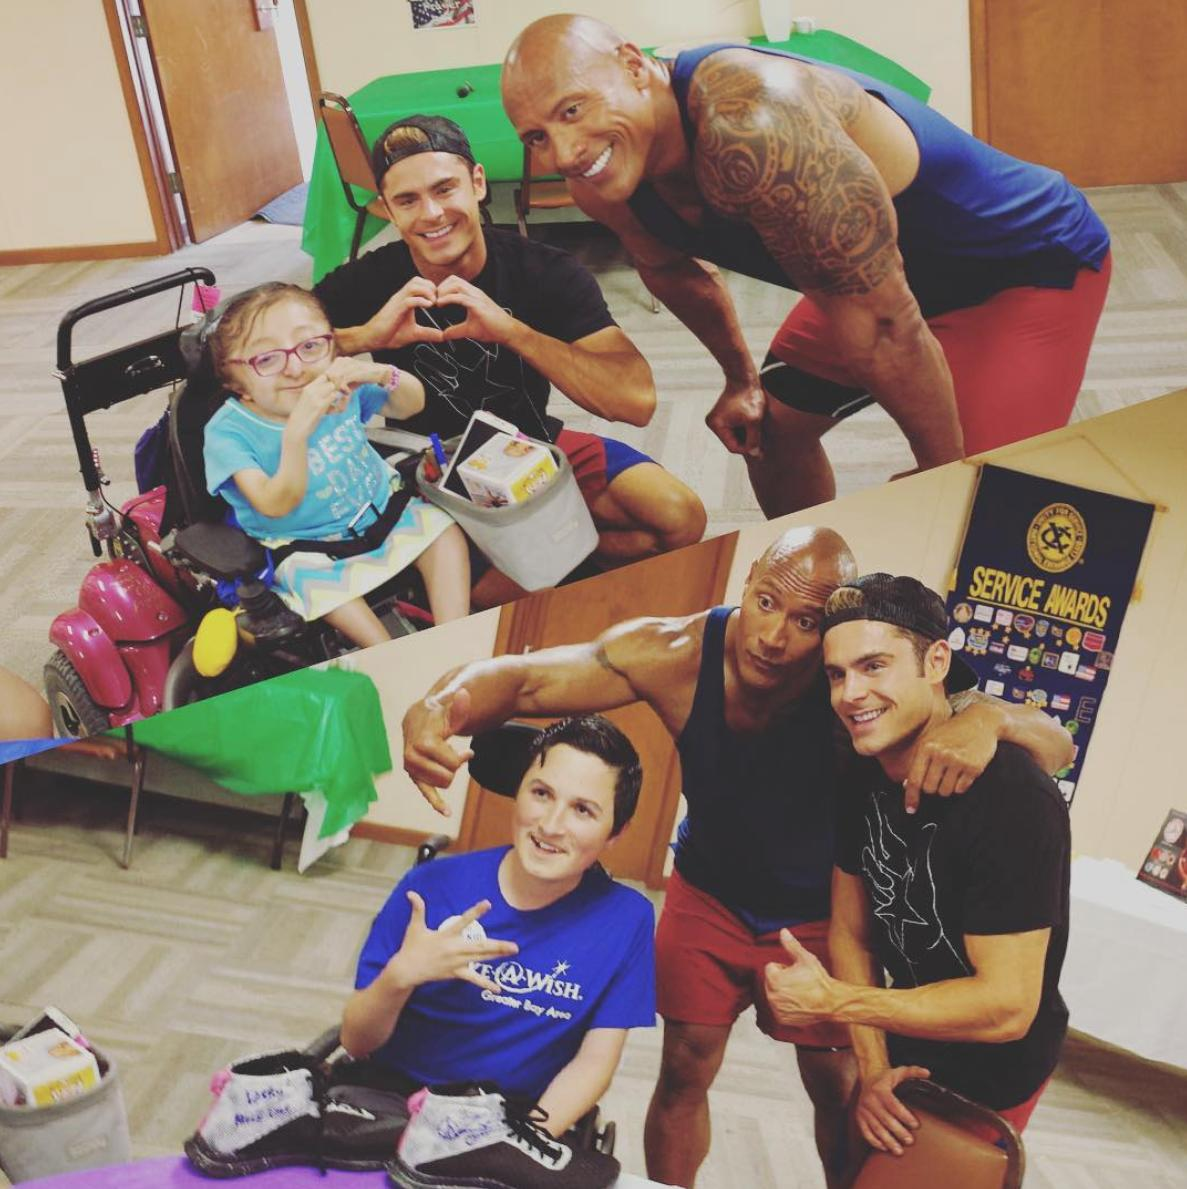 Zac Efron and The Rock head to a children's hospit